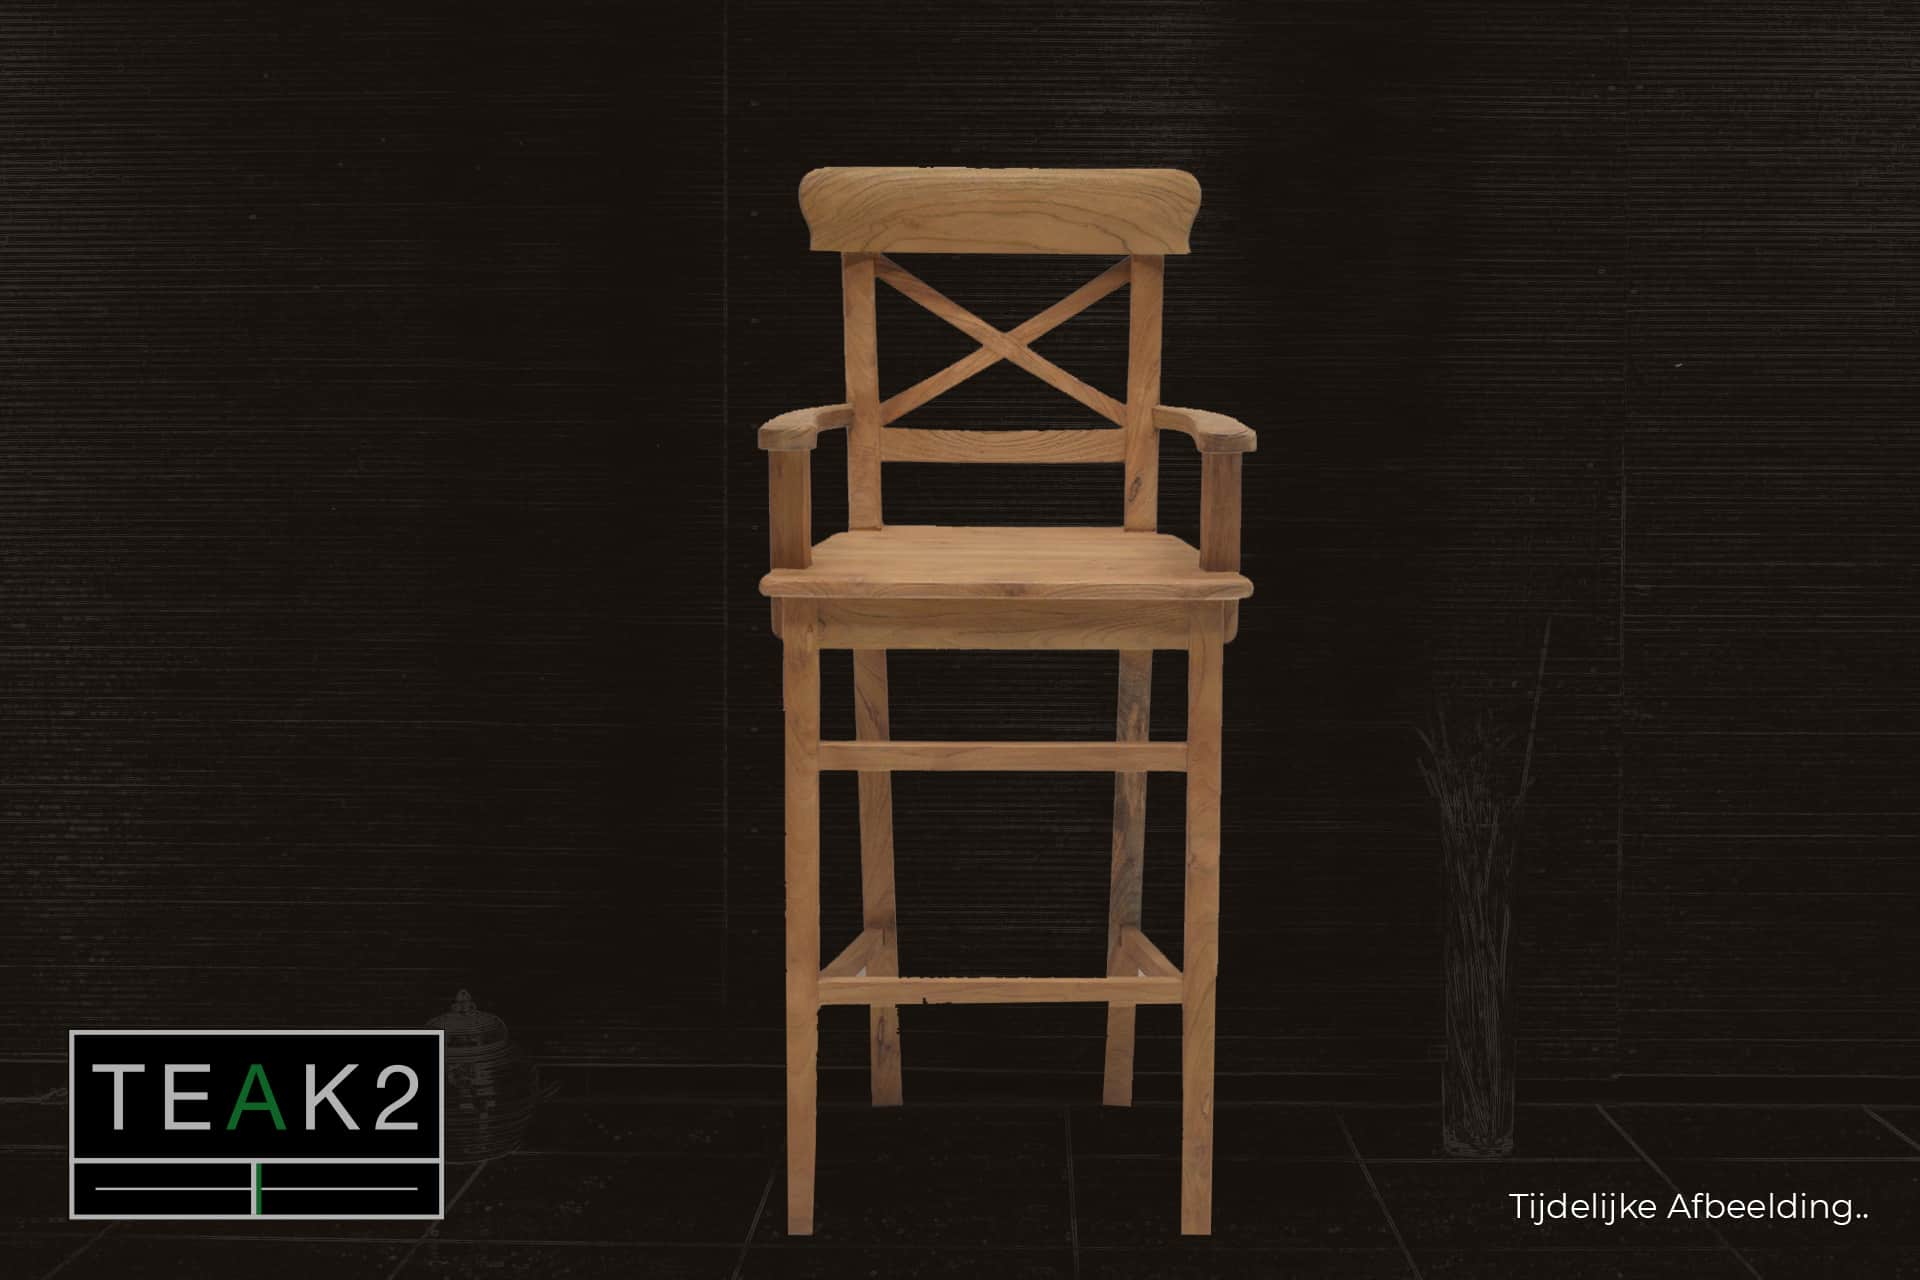 Bar stool Teak Kursi Palang Old Arm | teak bar stool with armrest and cross in the back. Rustic teak bar stool - furniture shop TEAK2.